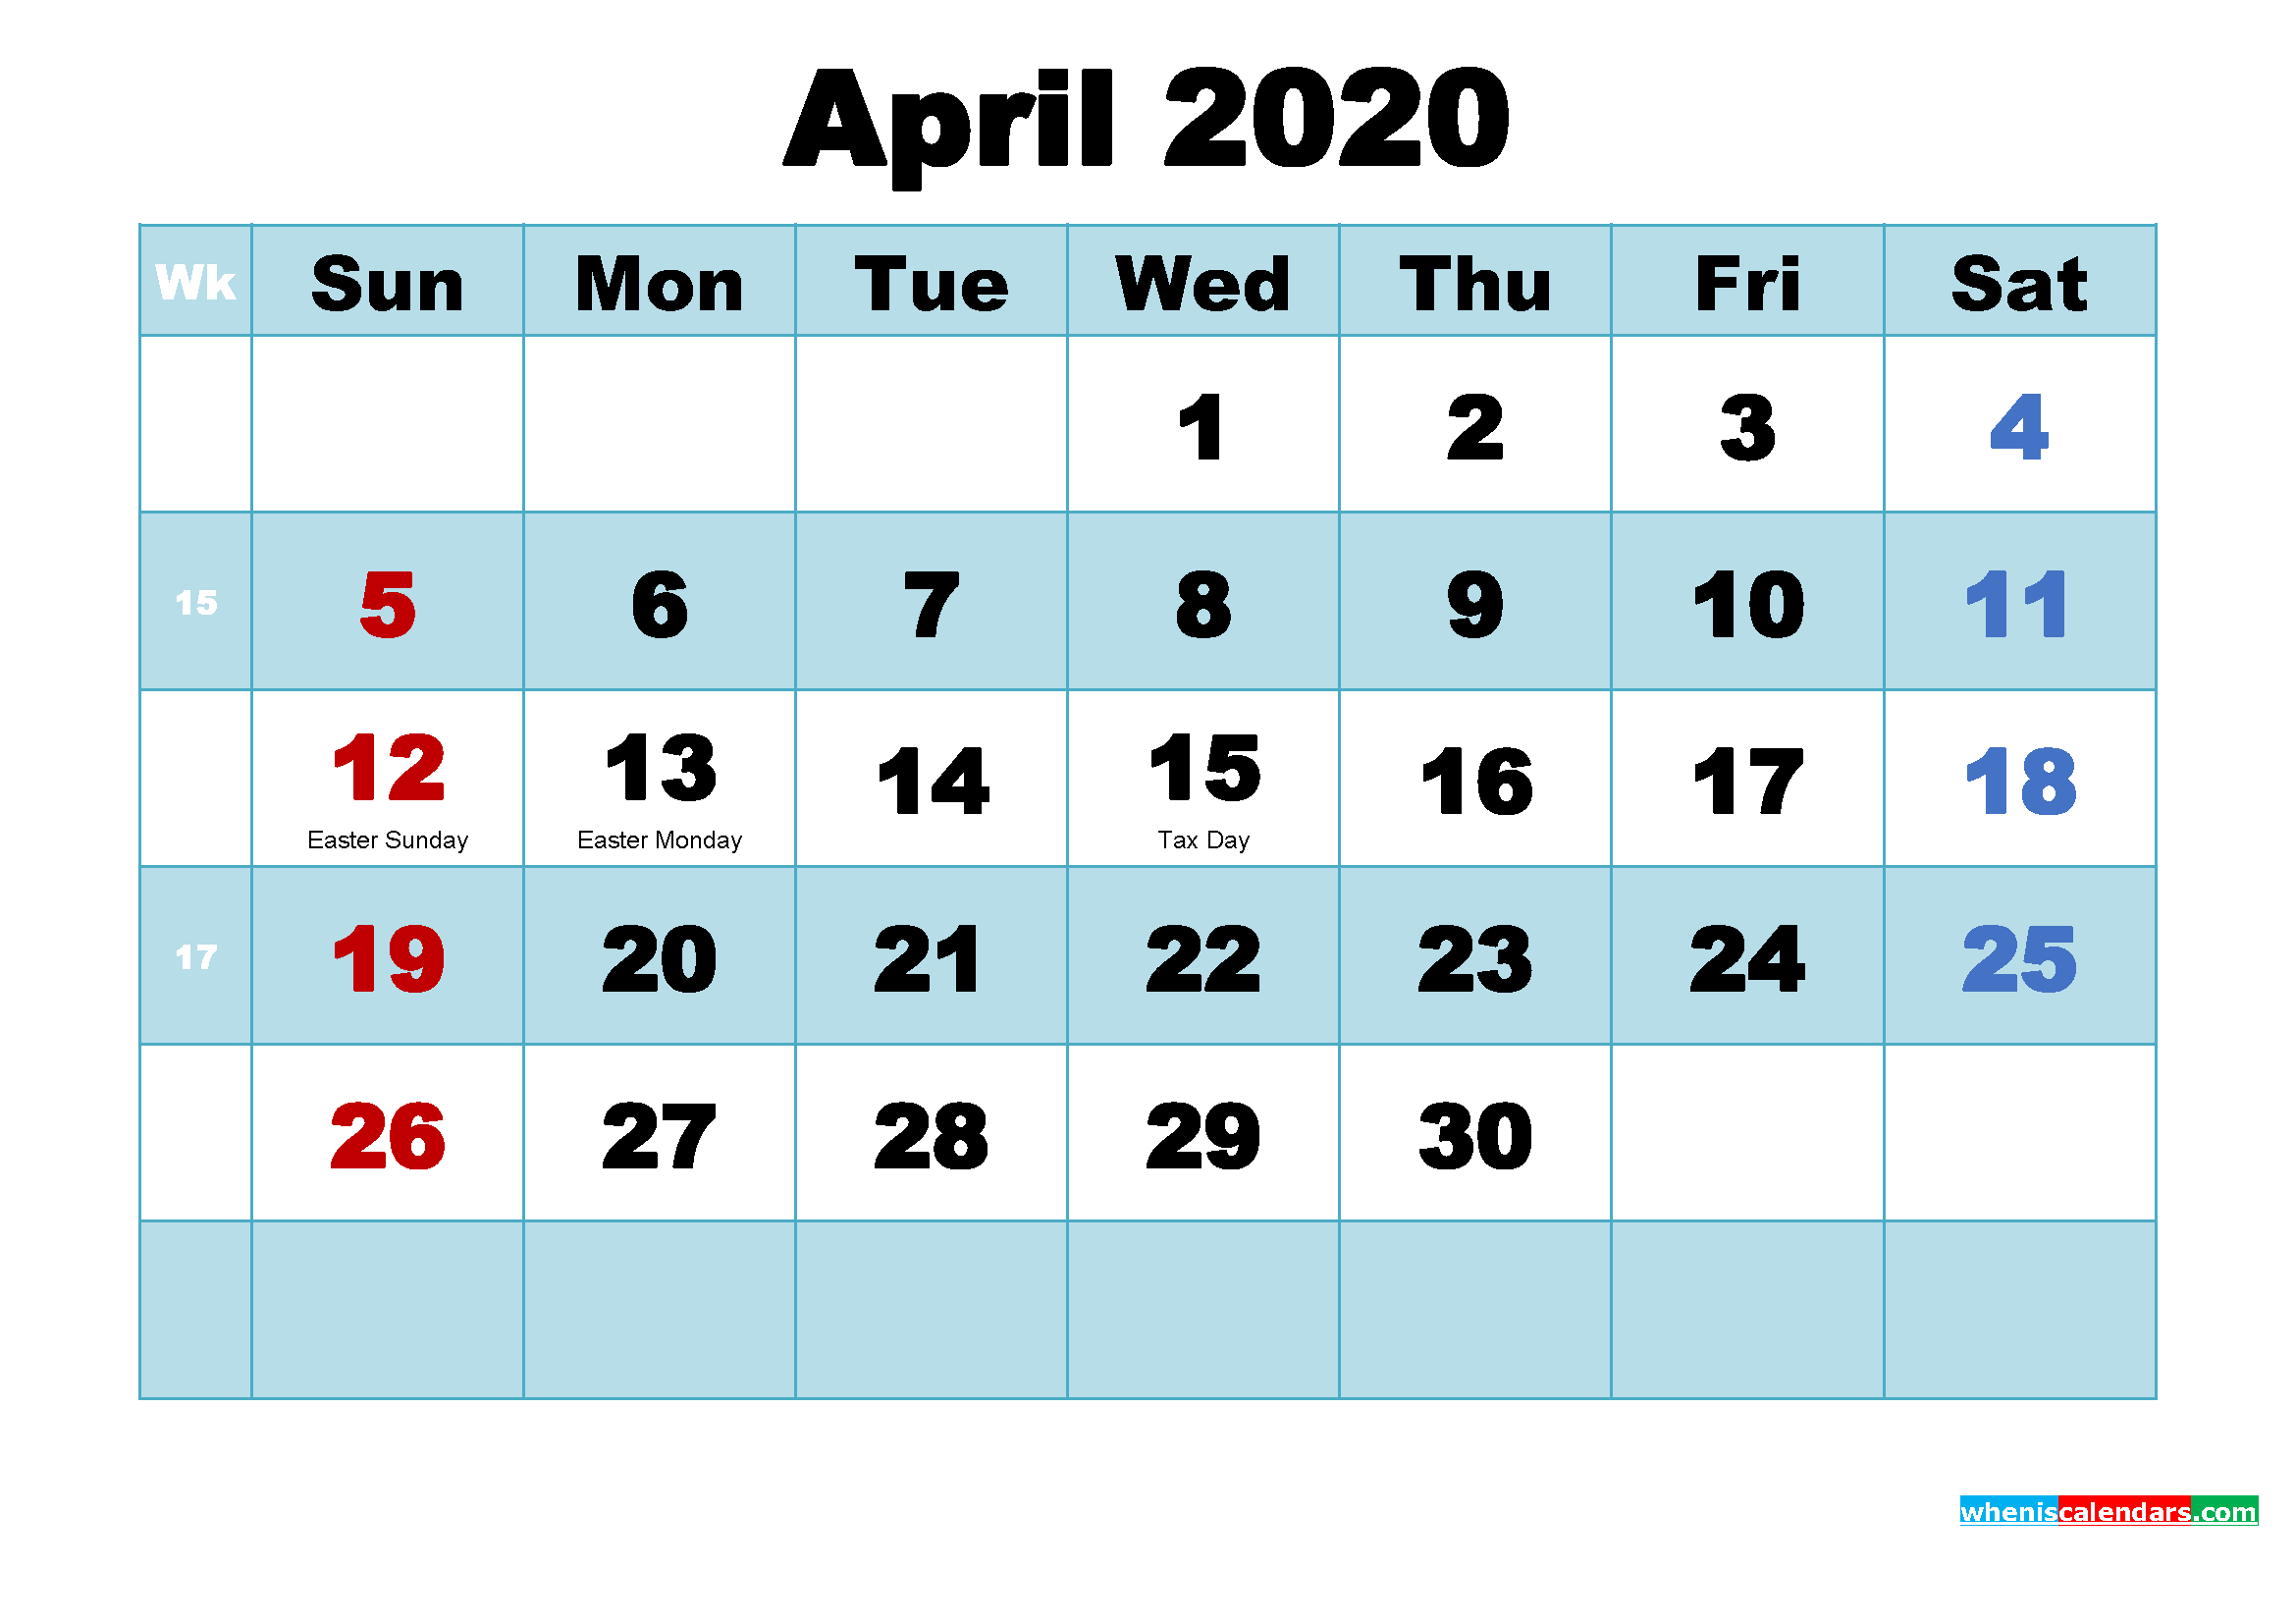 April 2020 Free Printable Calendar with Holidays